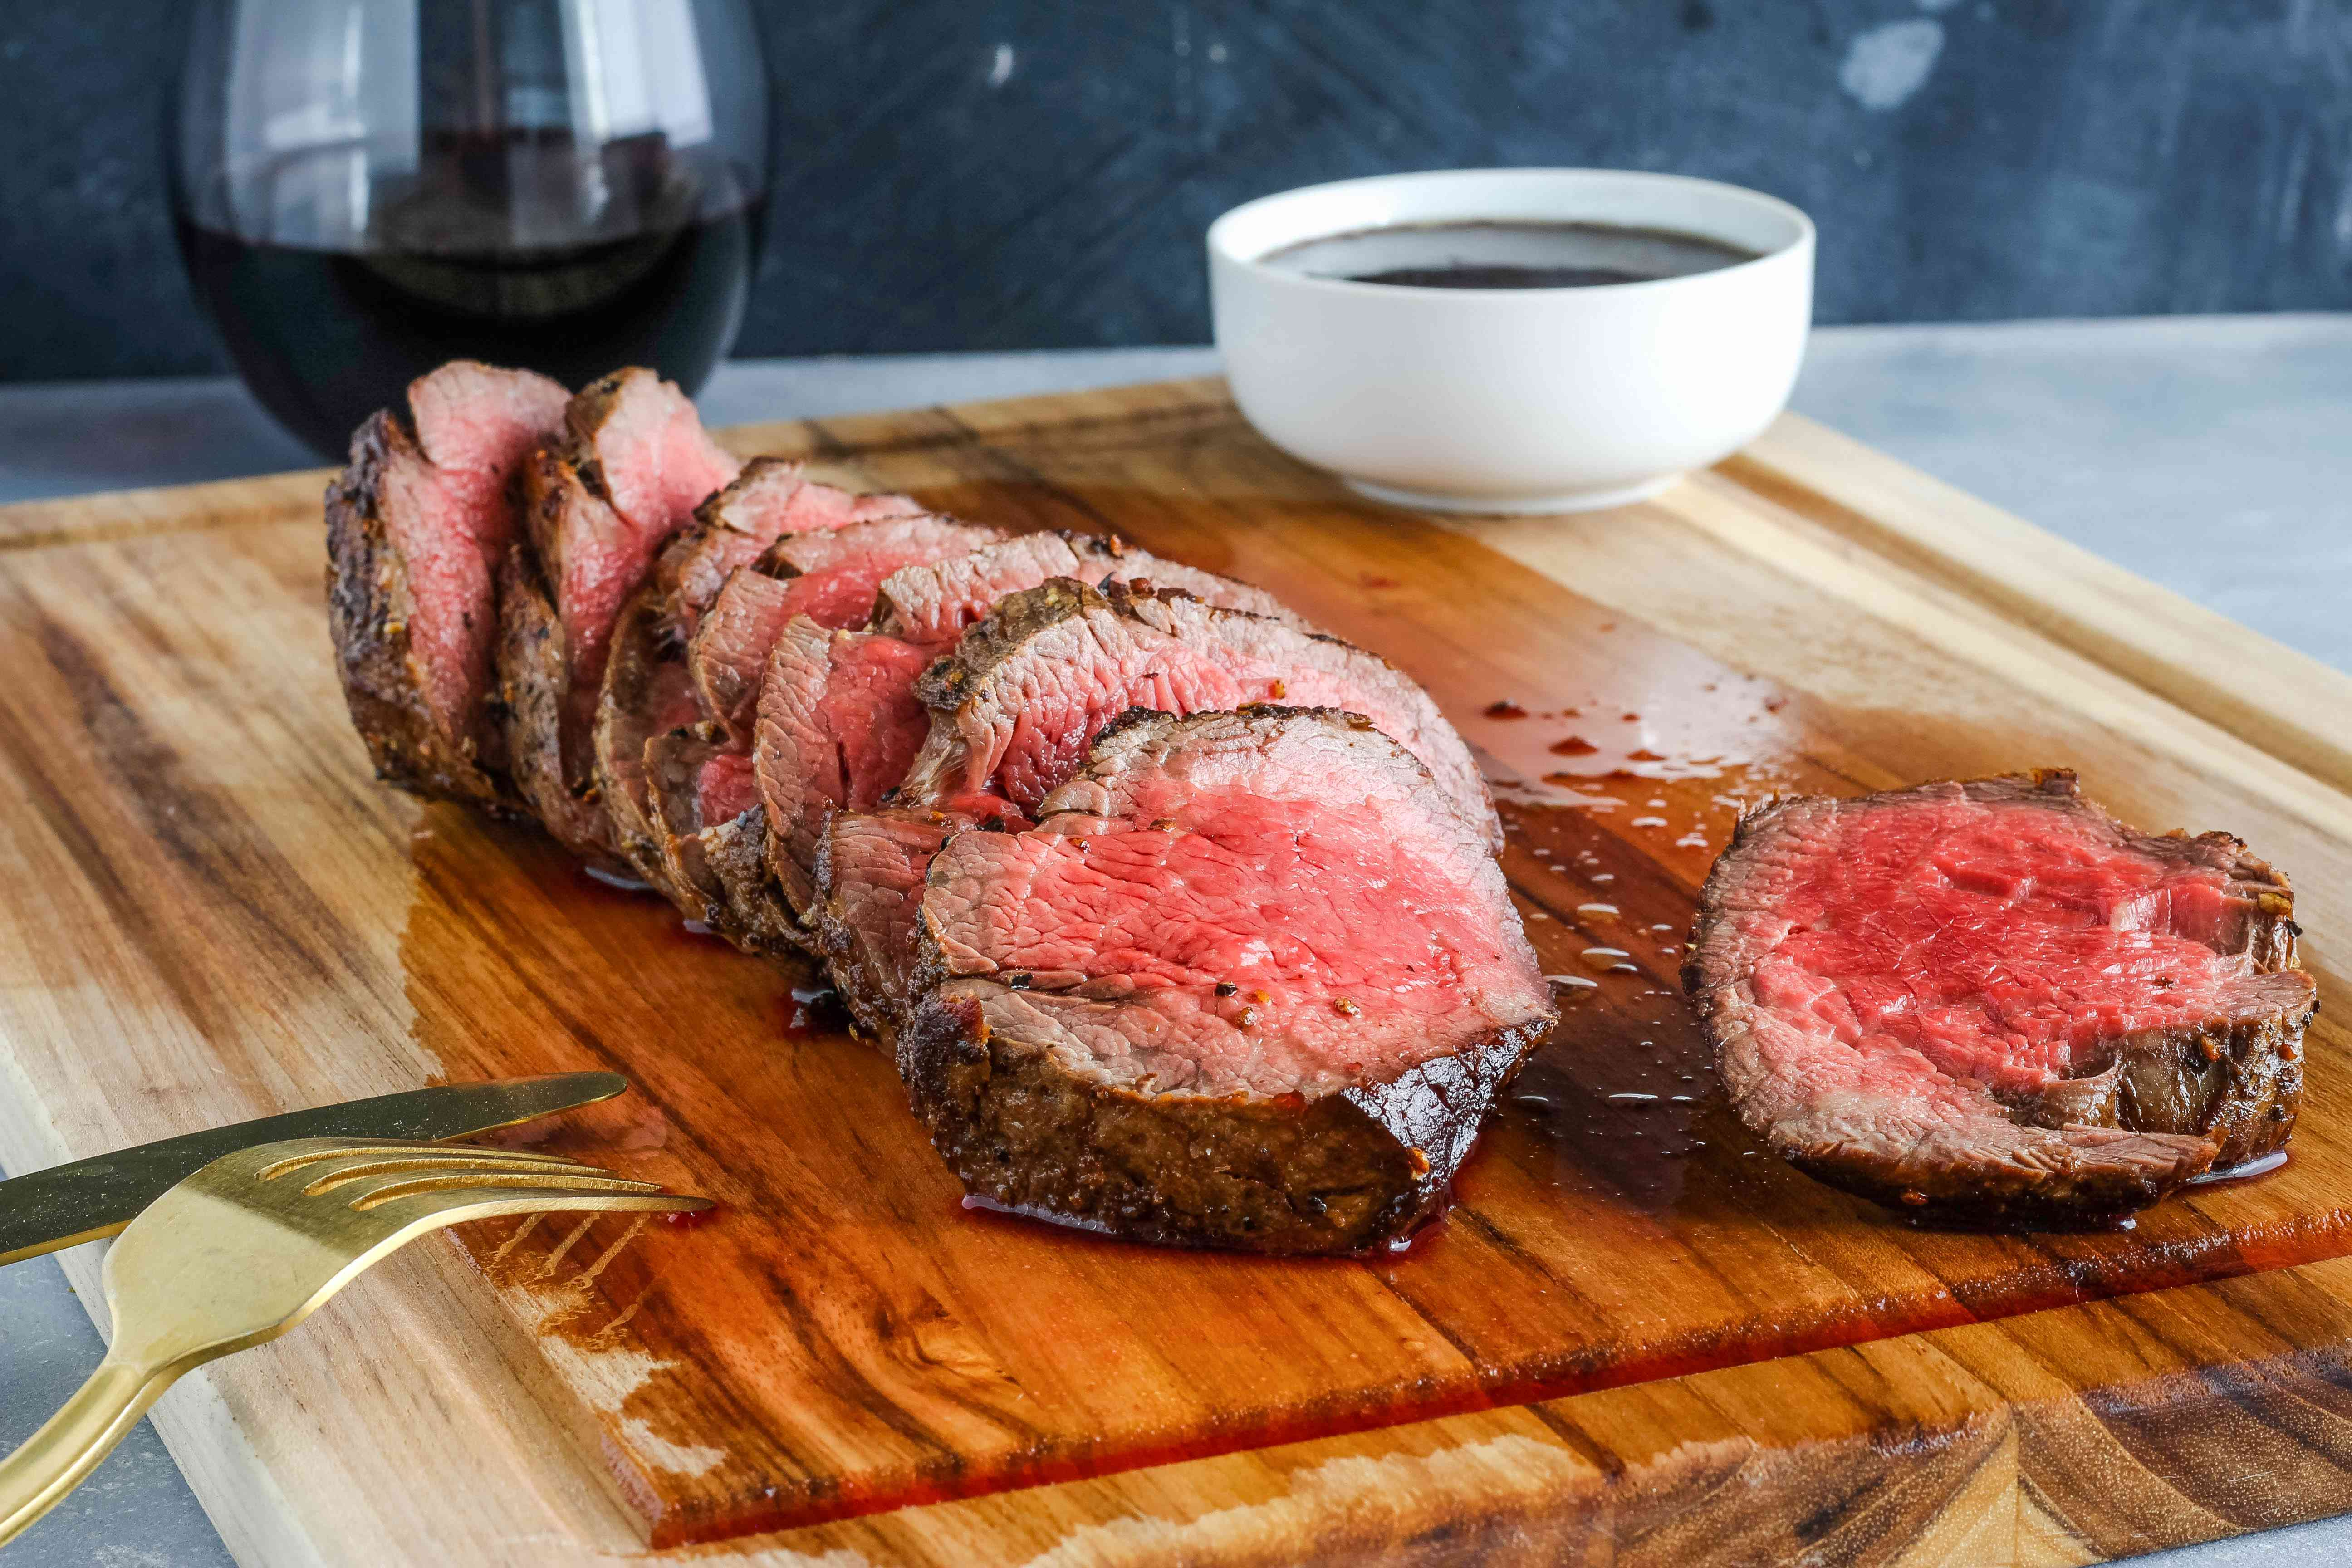 Cooked chateaubriand sliced on the diagonal plus a bowl of wine sauce